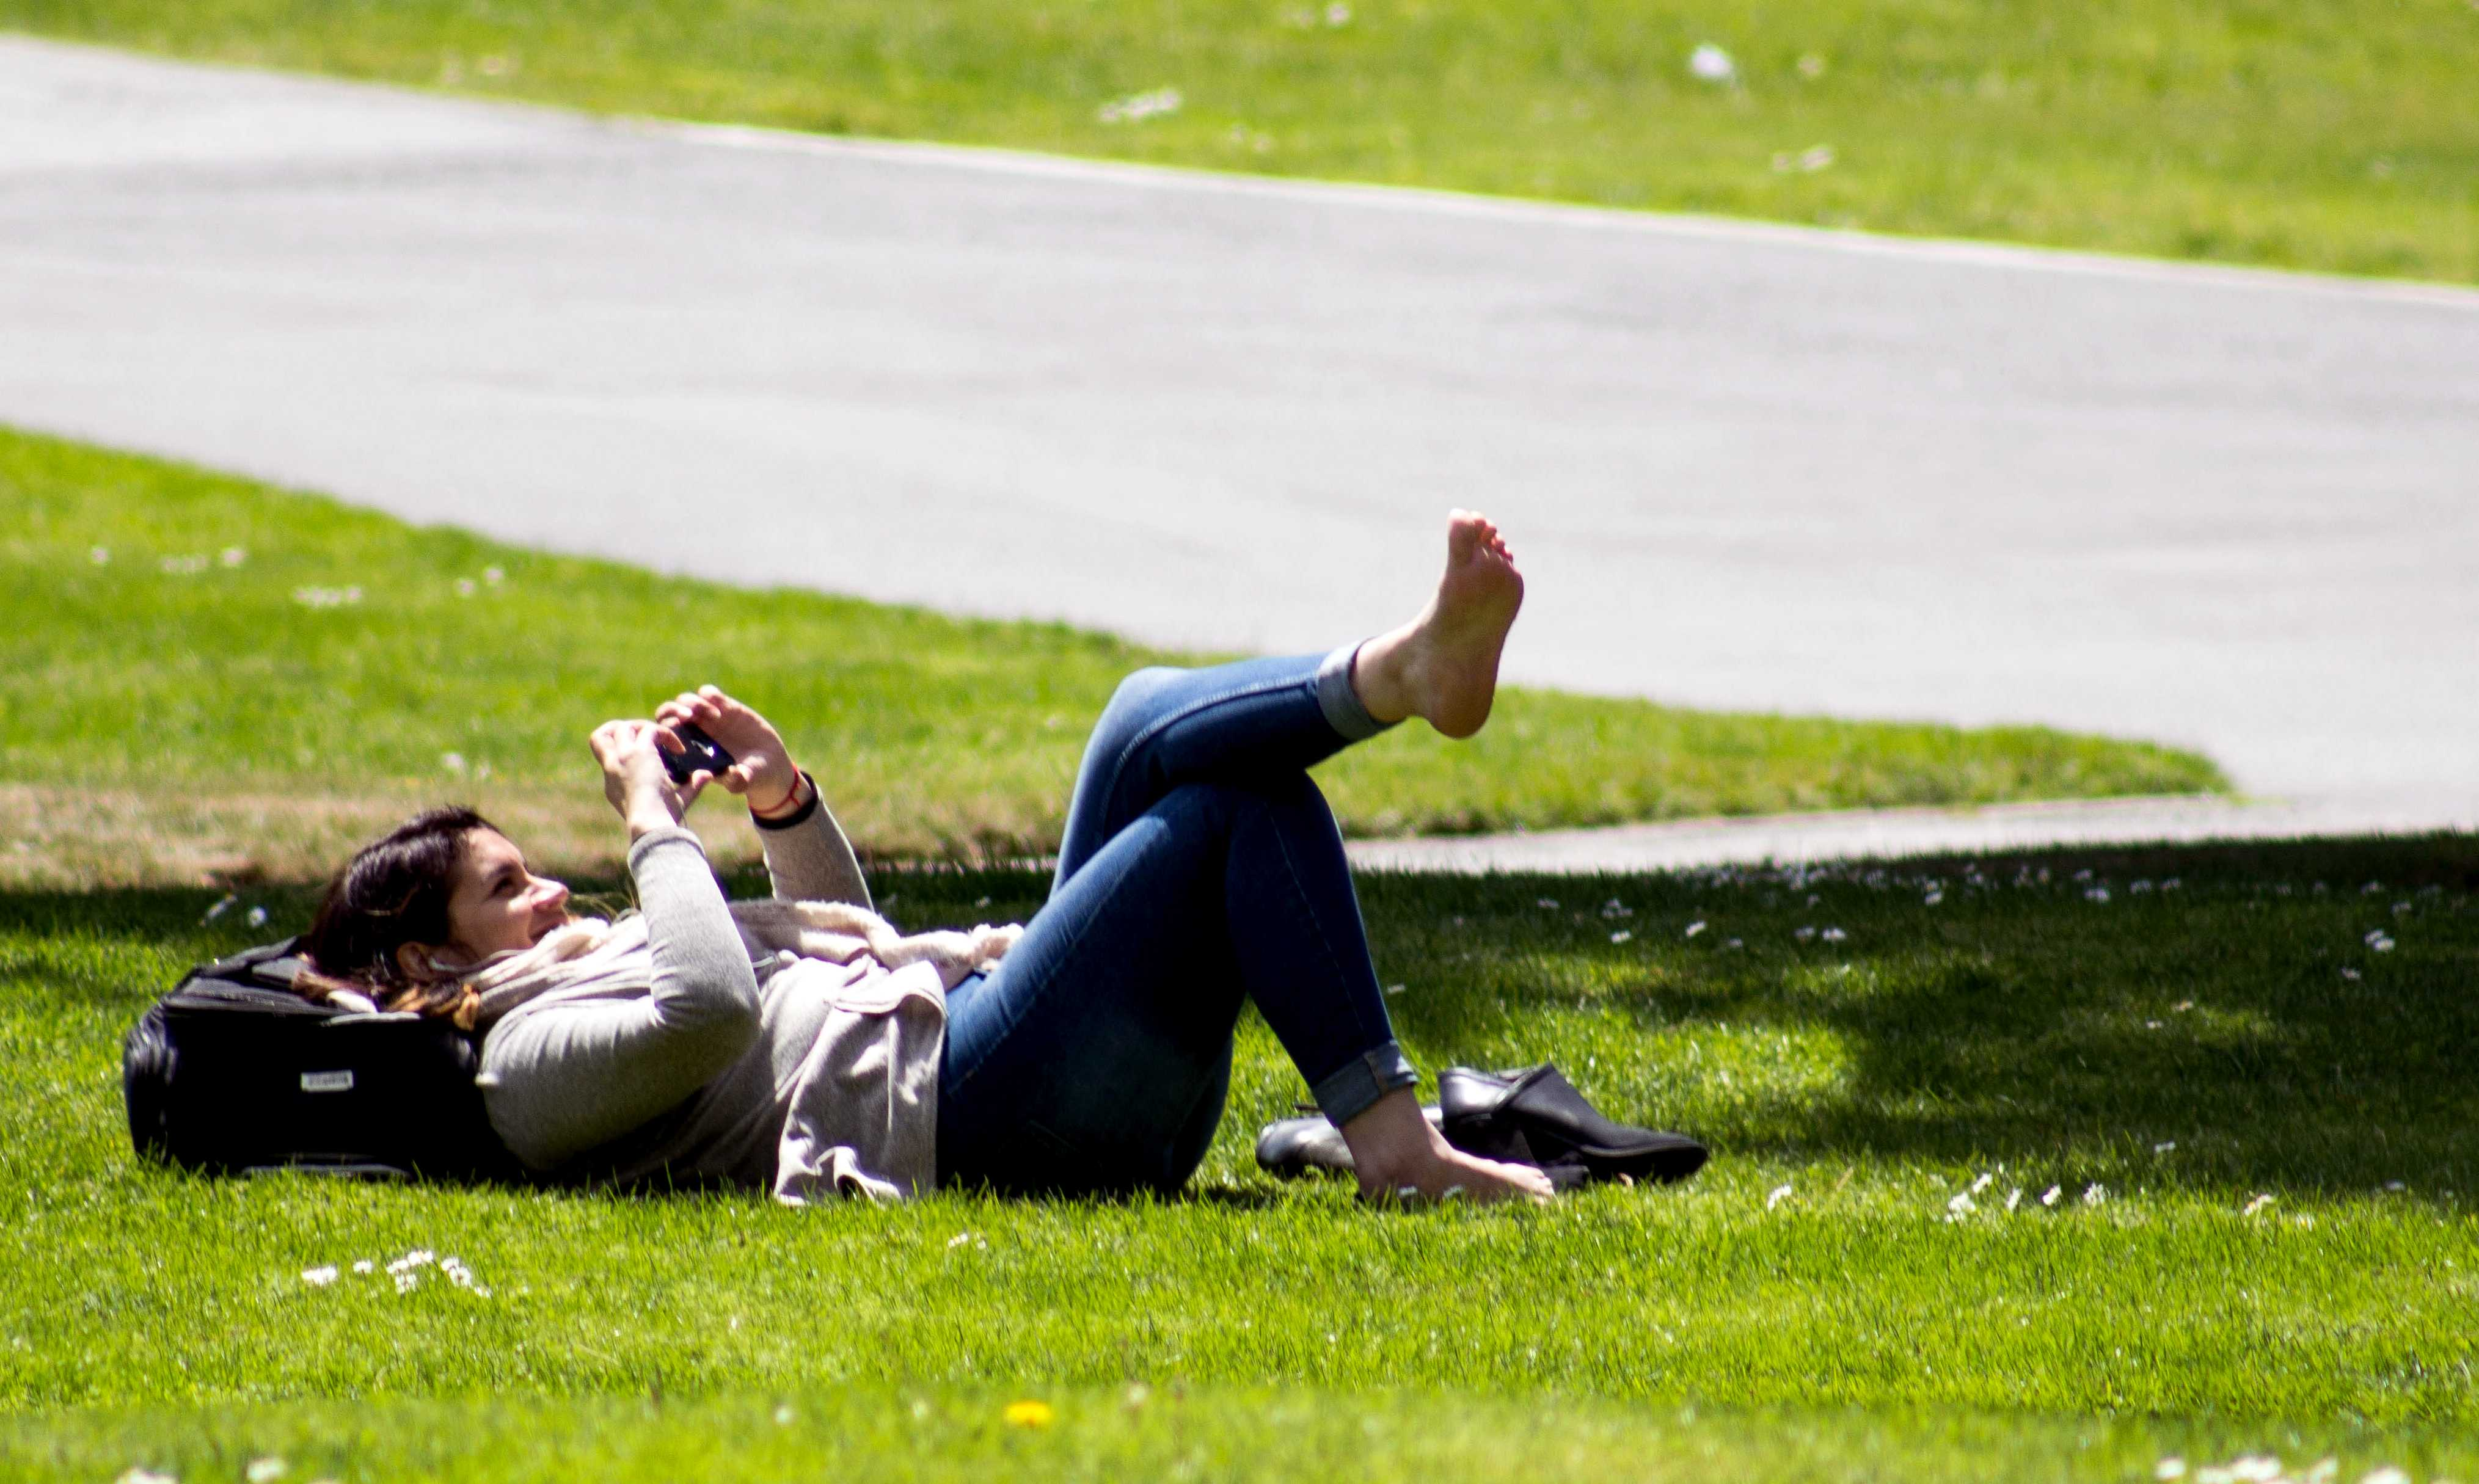 A SFSU student uses their phone on a sunny day while laying on the grass. Photo by Jordi Molina